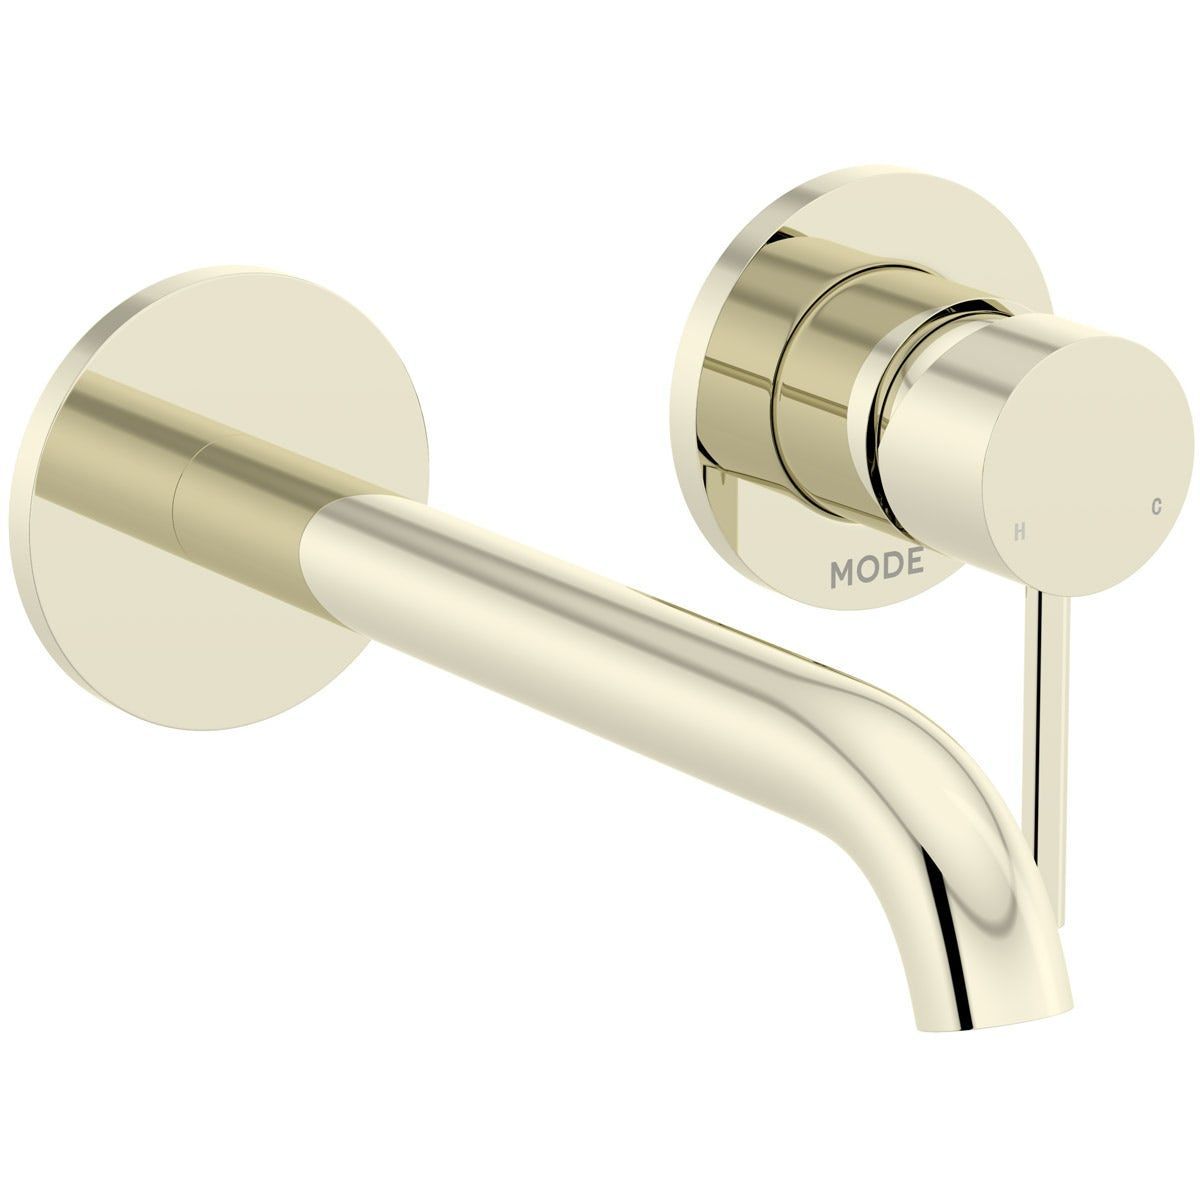 Mode Spencer Round Wall Mounted Gold Bath Mixer Tap Bath Mixer Taps Bath Mixer Mixer Taps